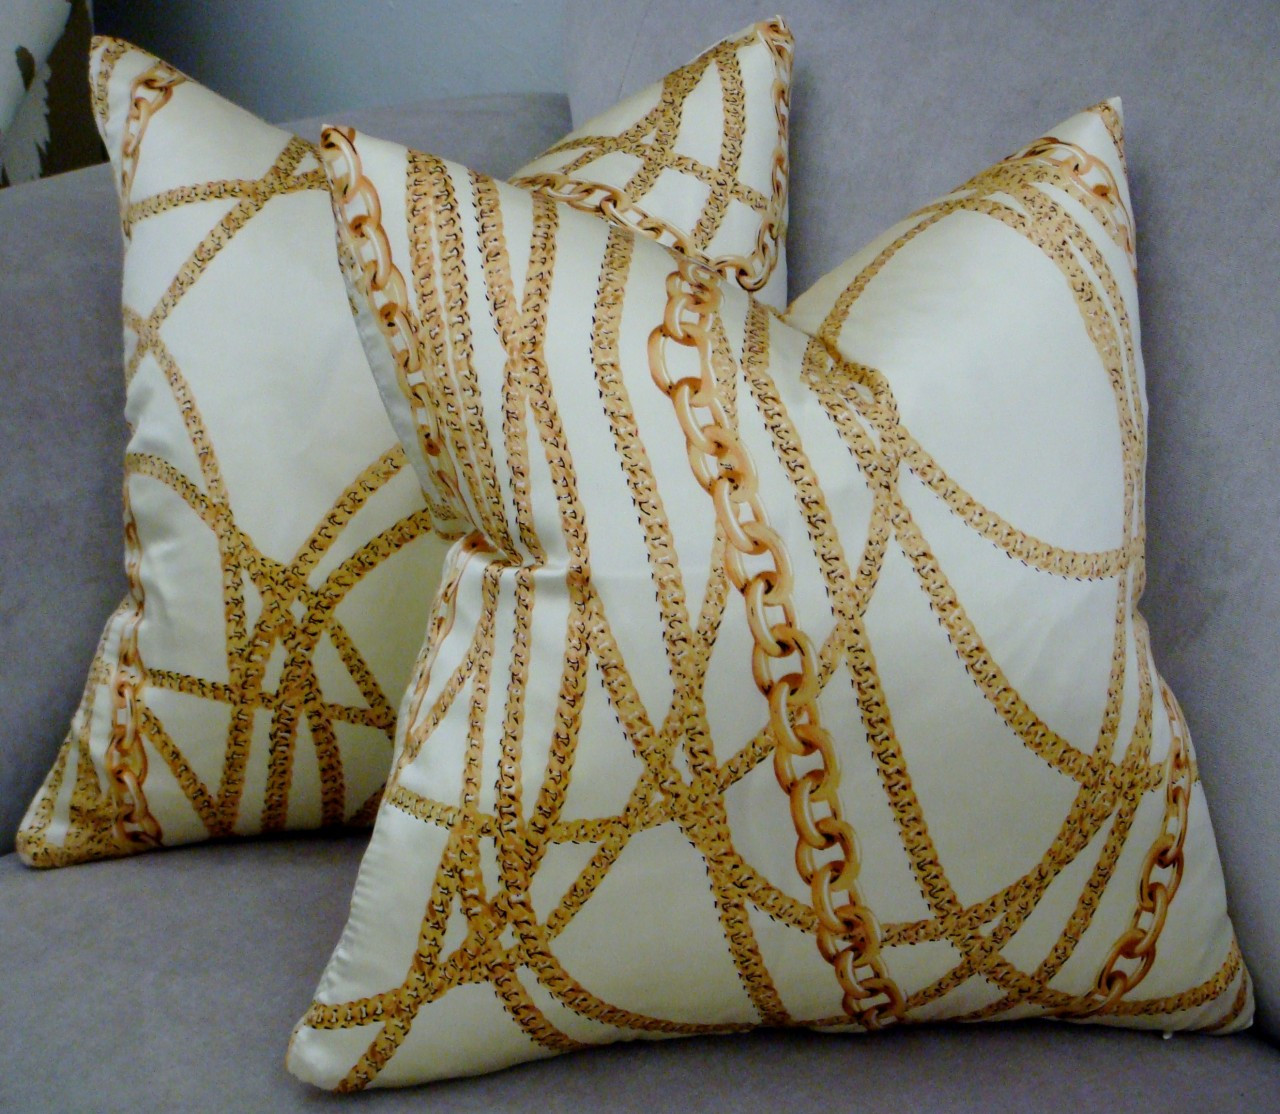 Designer Corture Throw Pillows Chanel Chain Style